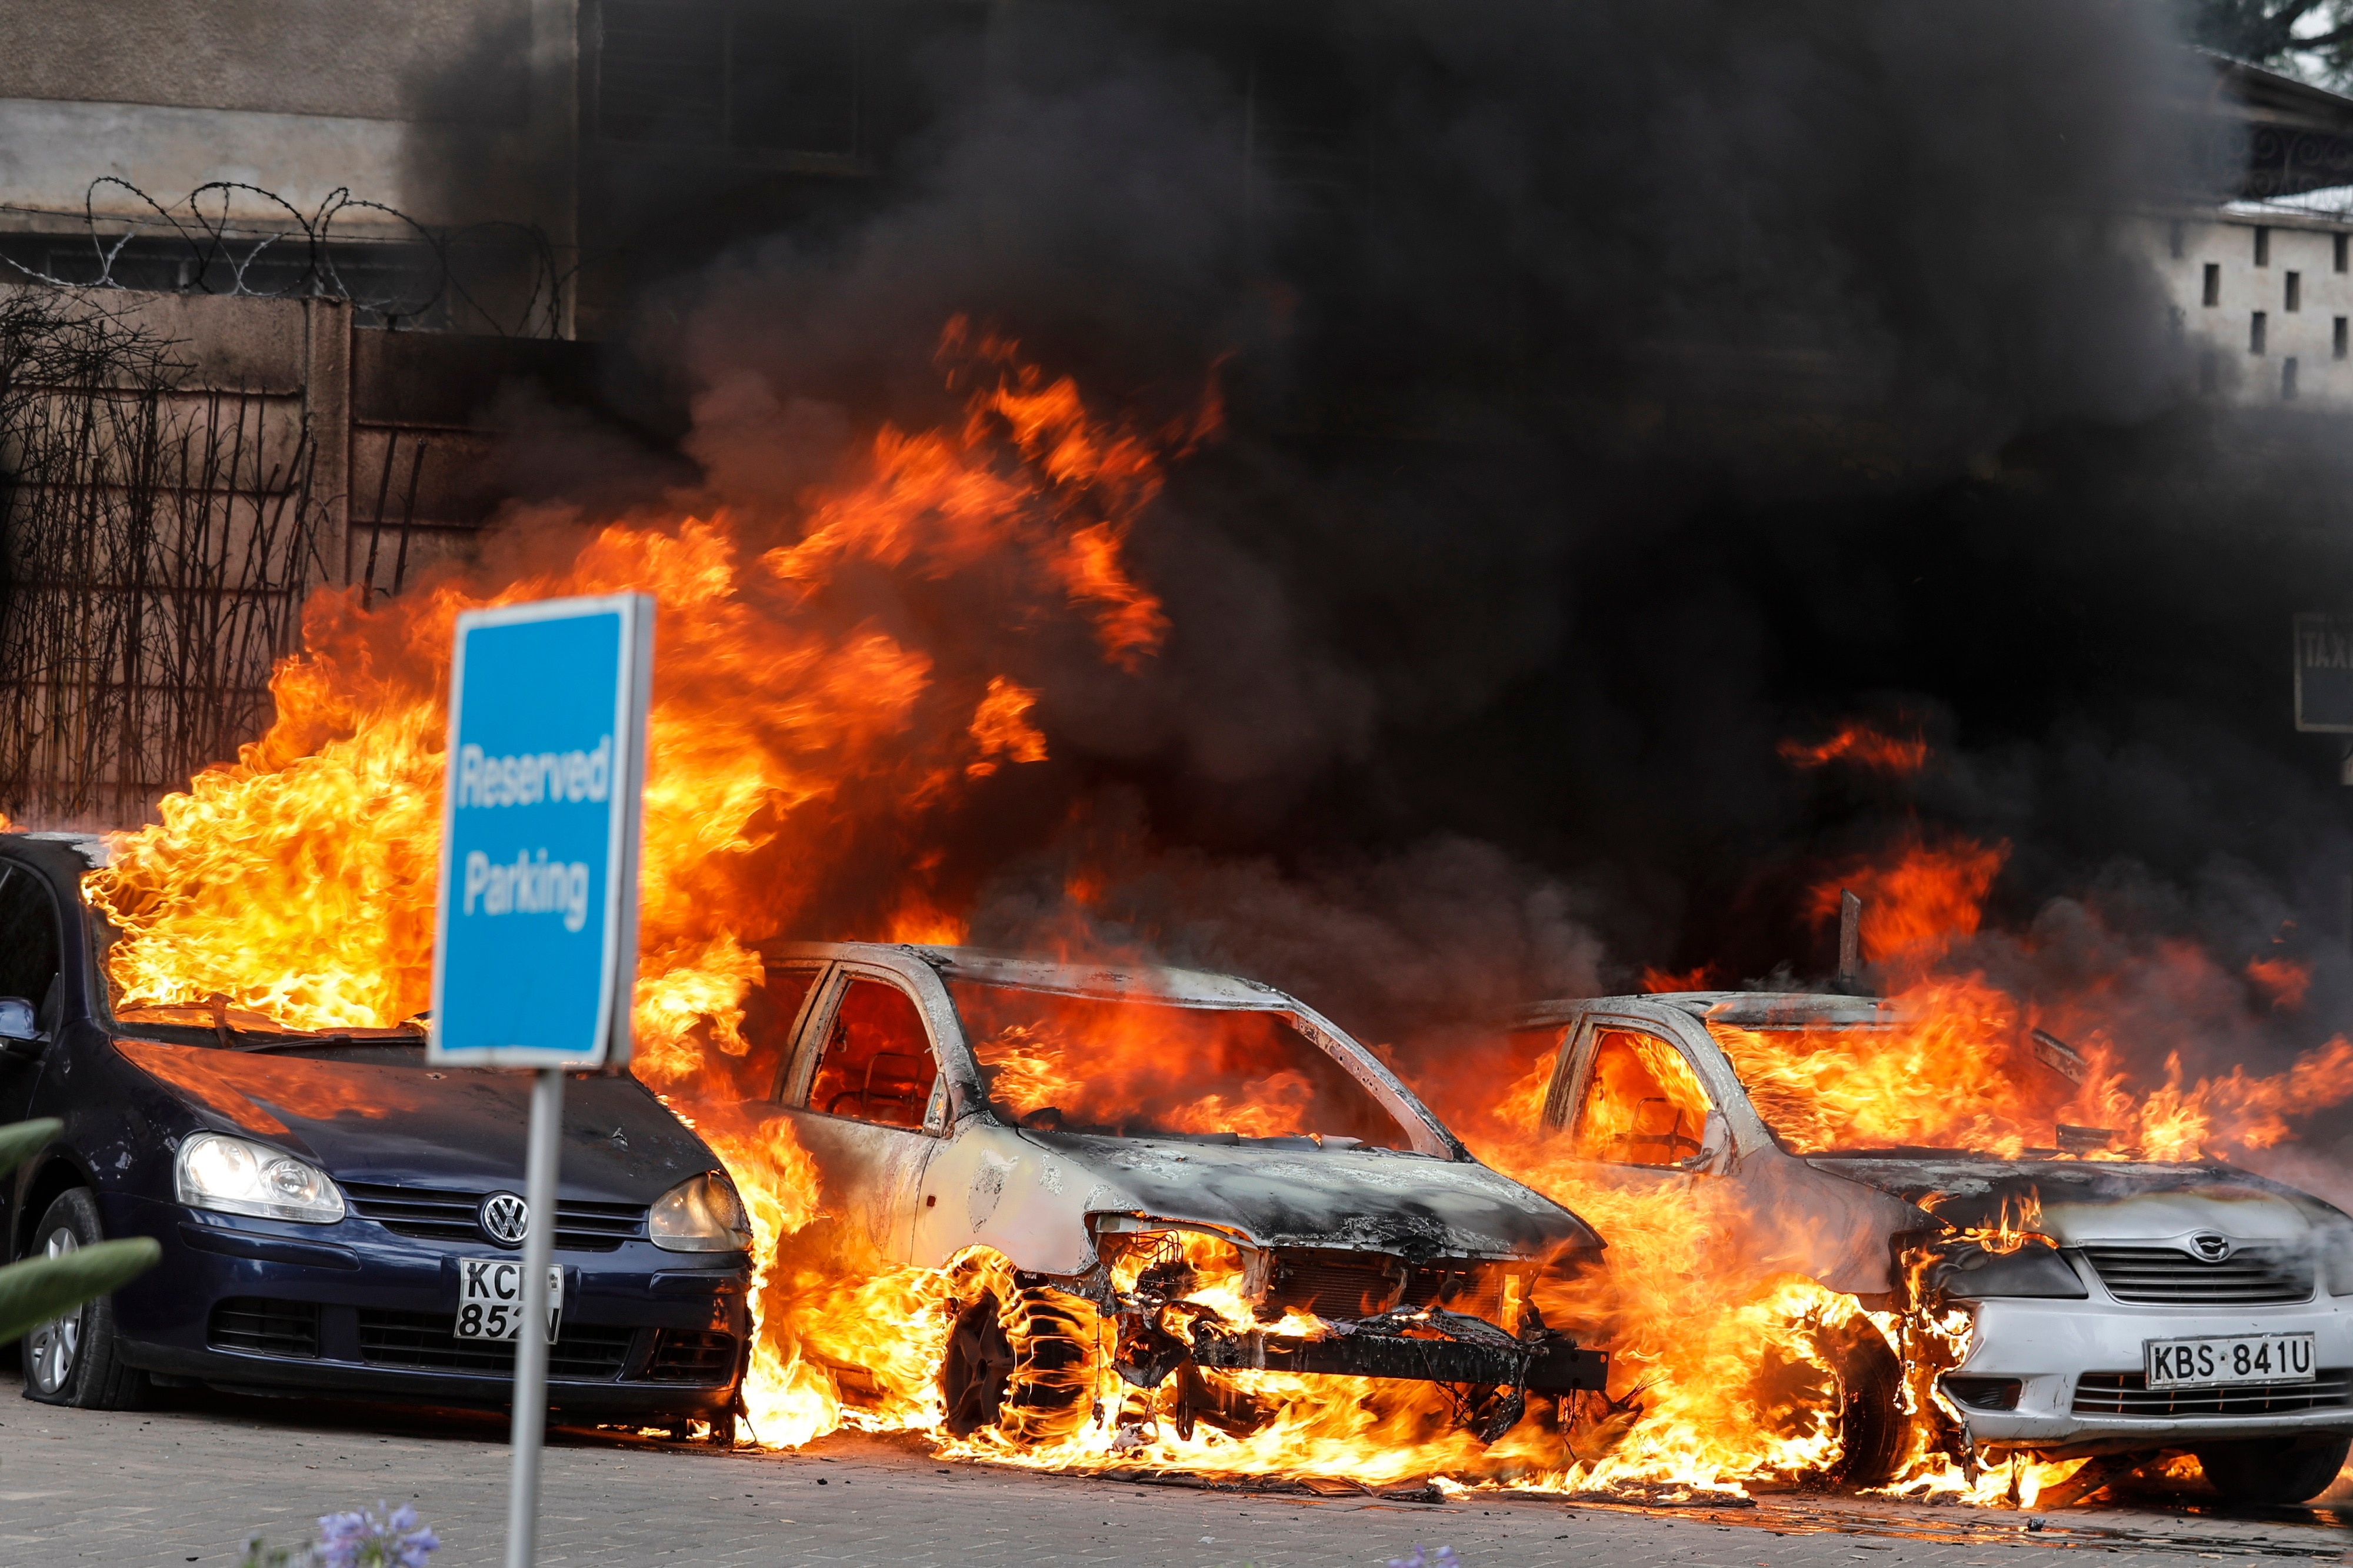 Cars burn at the parking lot during an ongoing gunfire and explosions in Nairobi, Kenya.